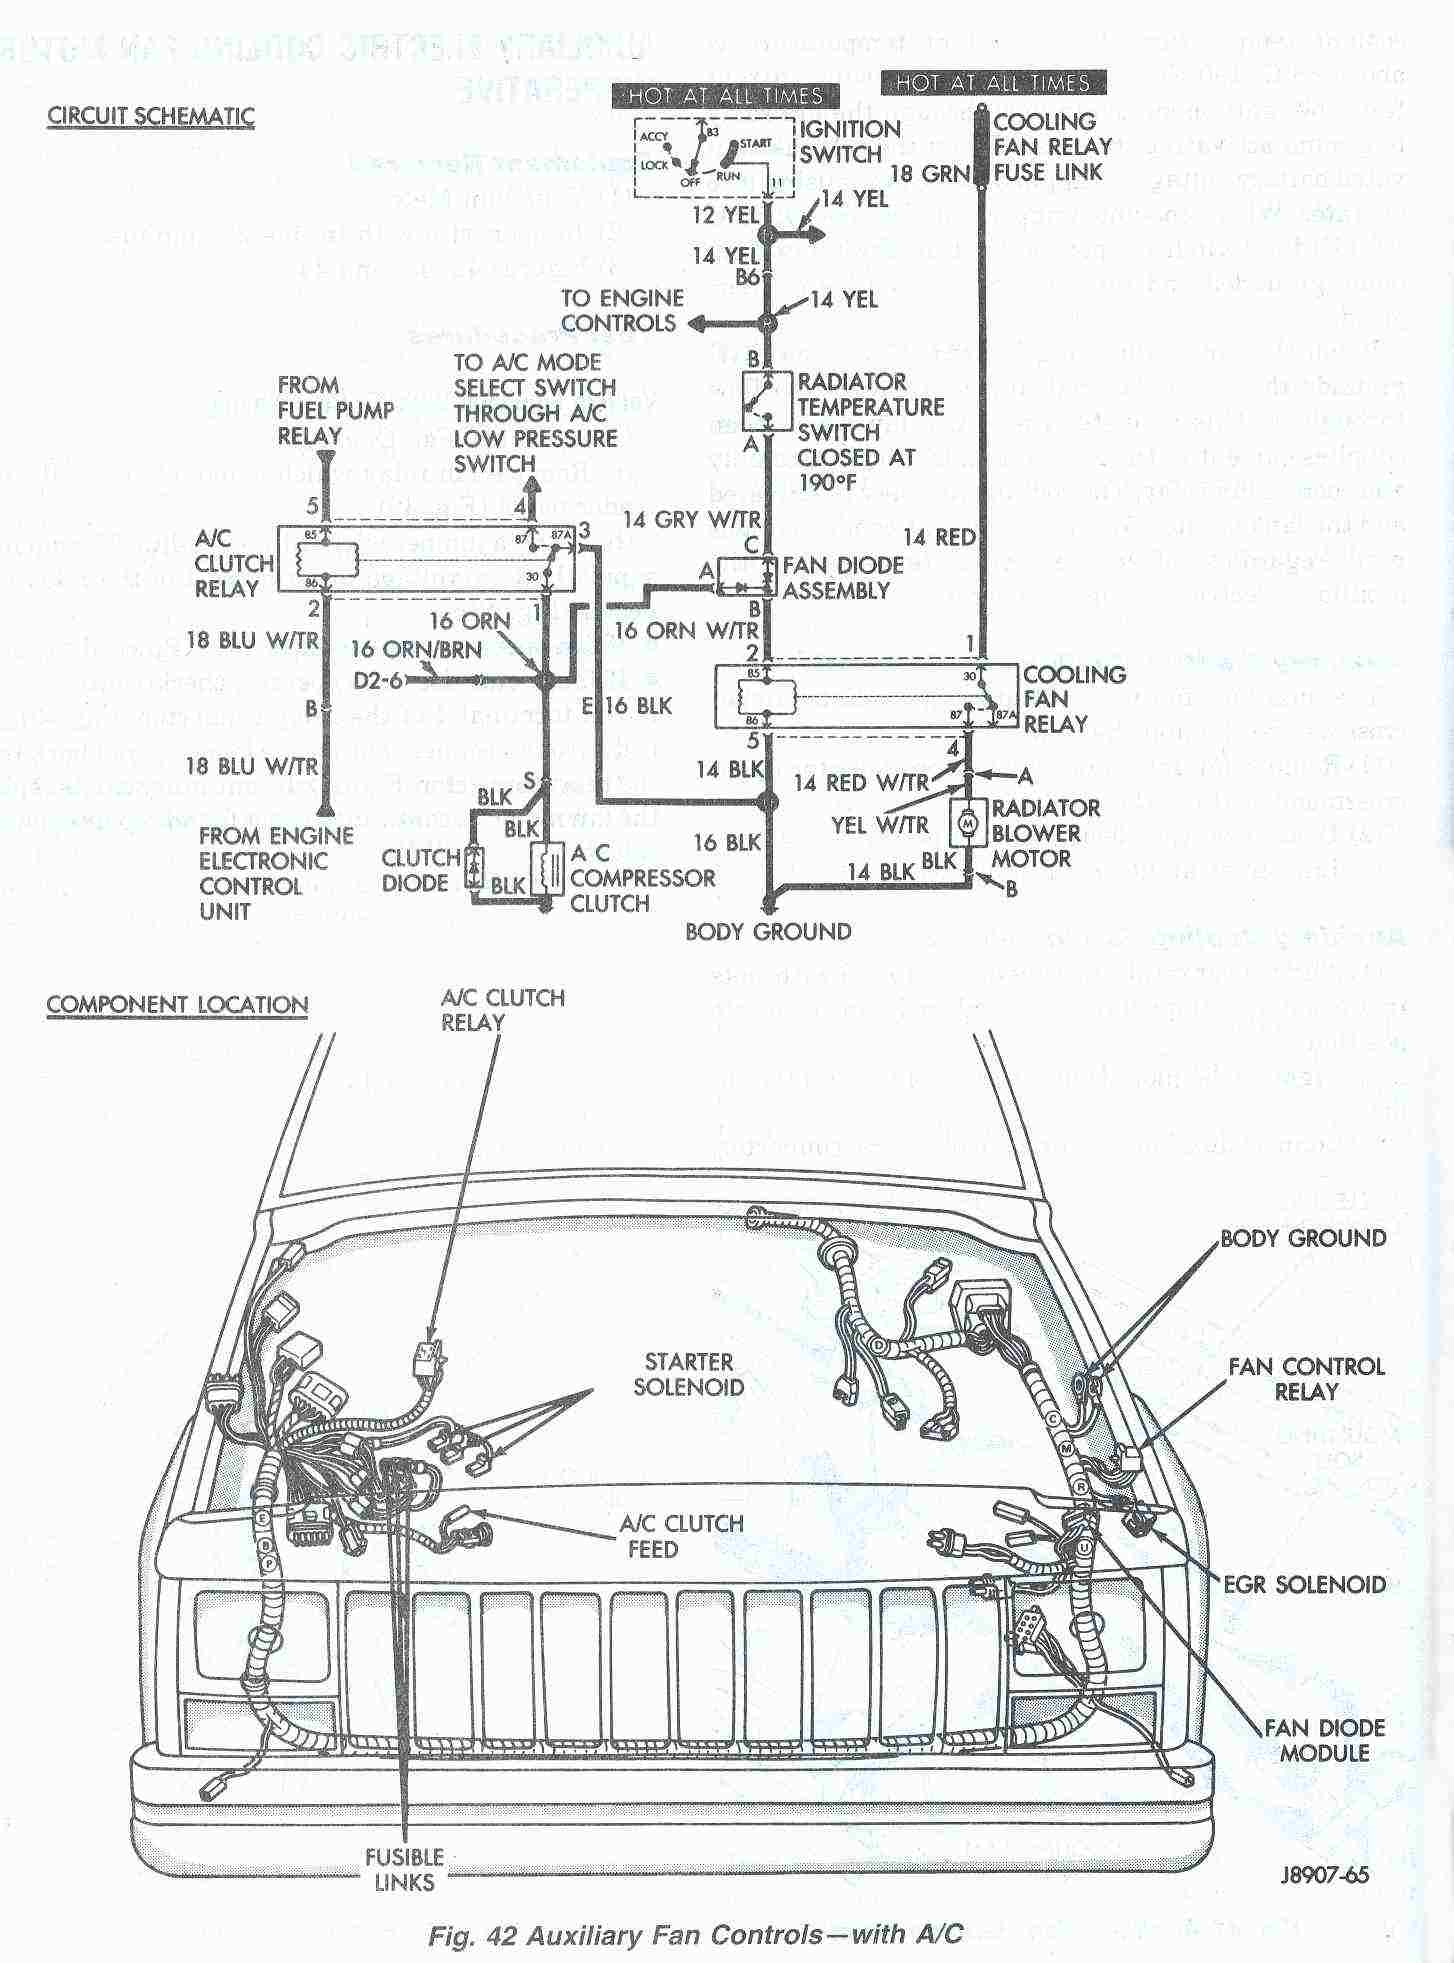 Jeep Cherokee Cooling System Electric Fan Troubleshooting Rh Lunghd Com 2001 Grand Pcm Wiring Diagram 2000